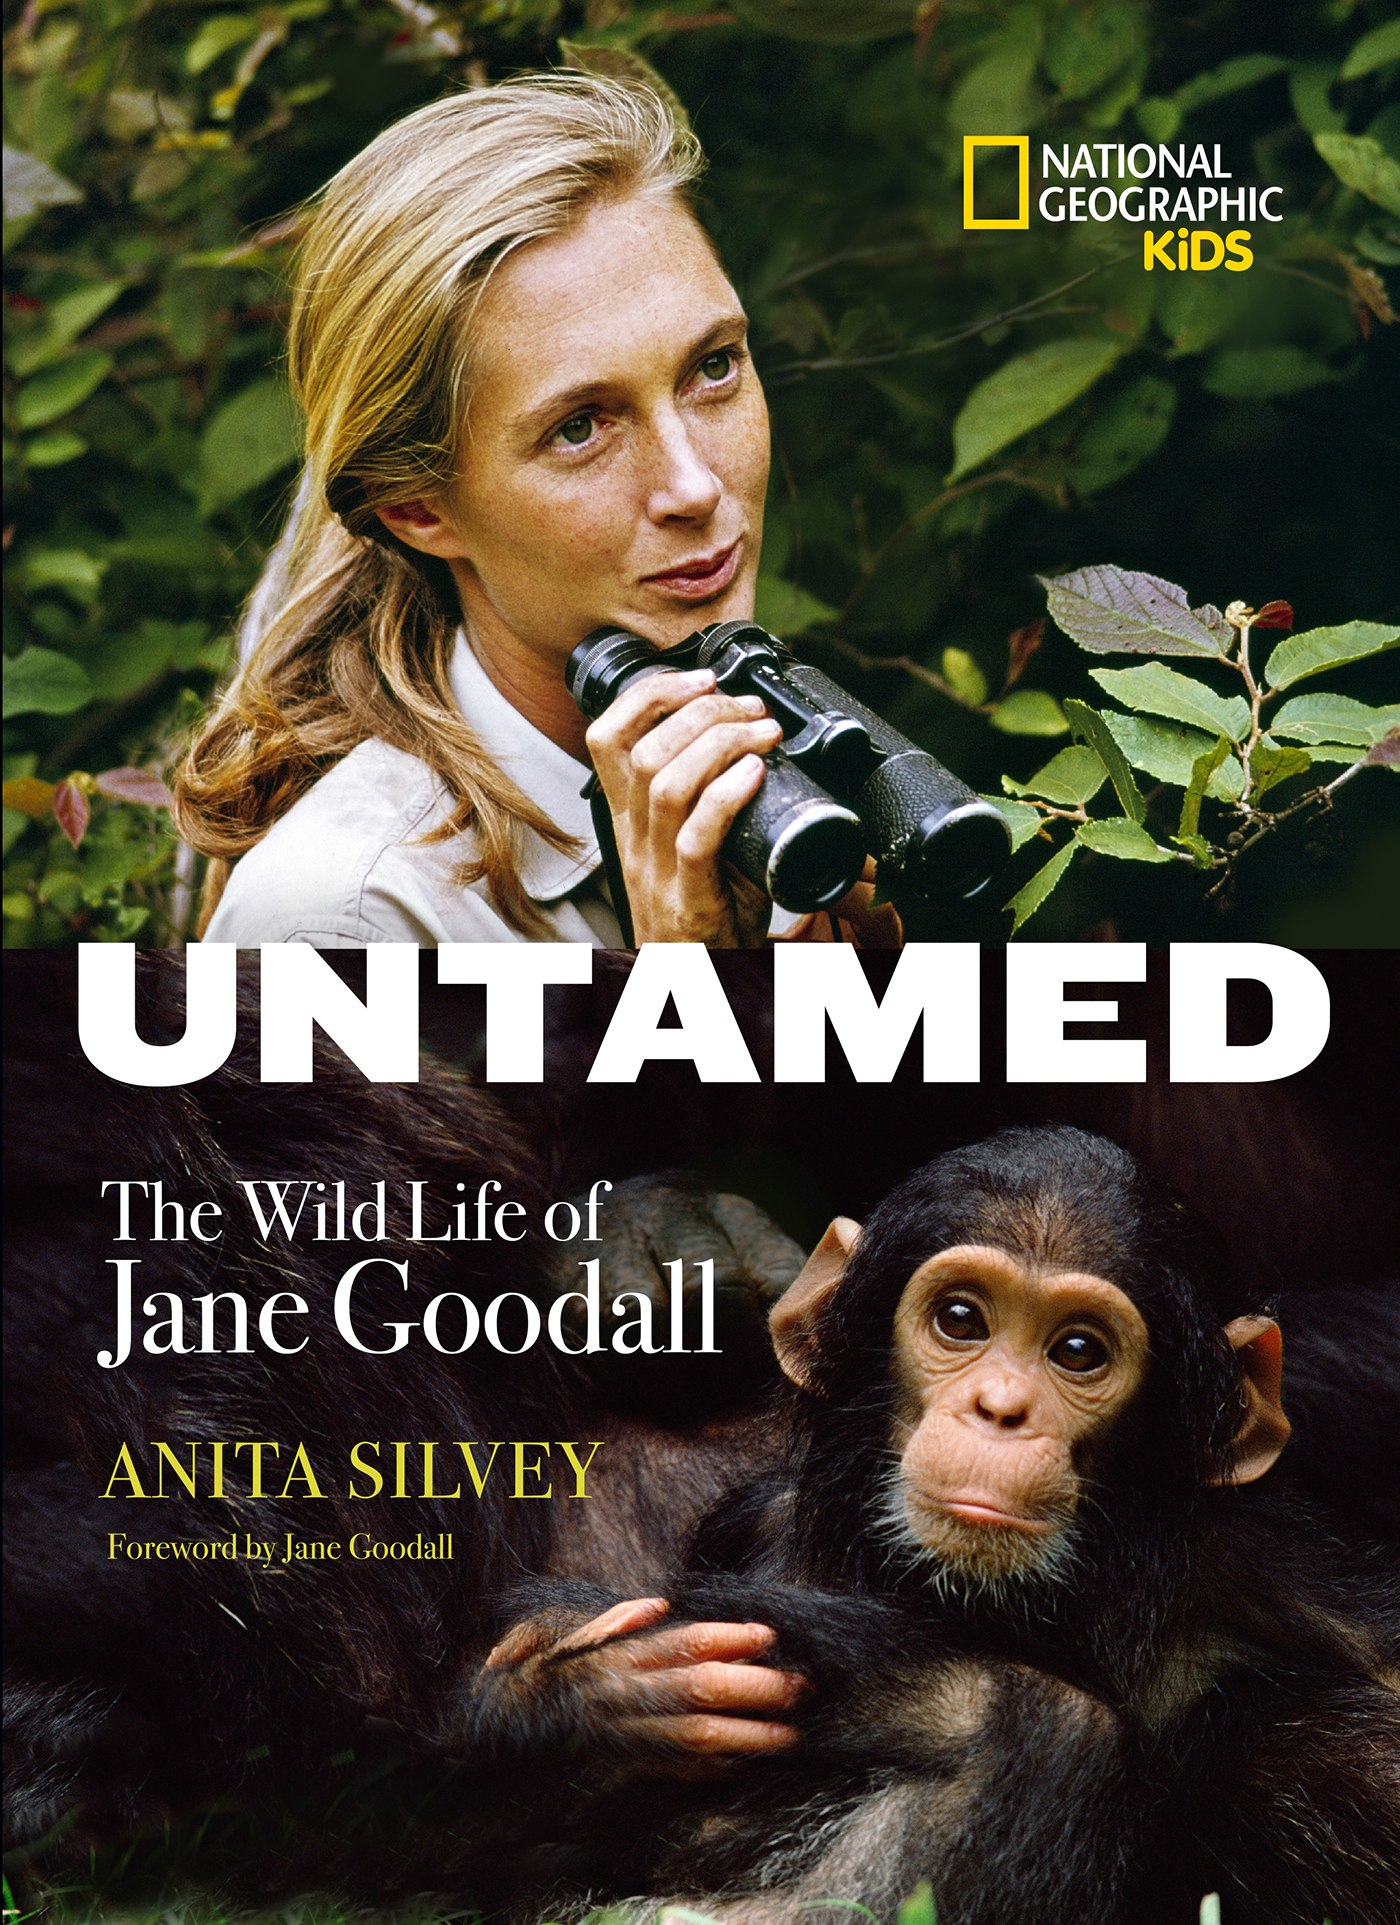 """Untamed: The Wild Life of Jane Goodall"" by Anita Silvey, foreword by Jane Goodall c.2015, National Geographic                 $18.99 / $21.99 Canada                   96 pages"